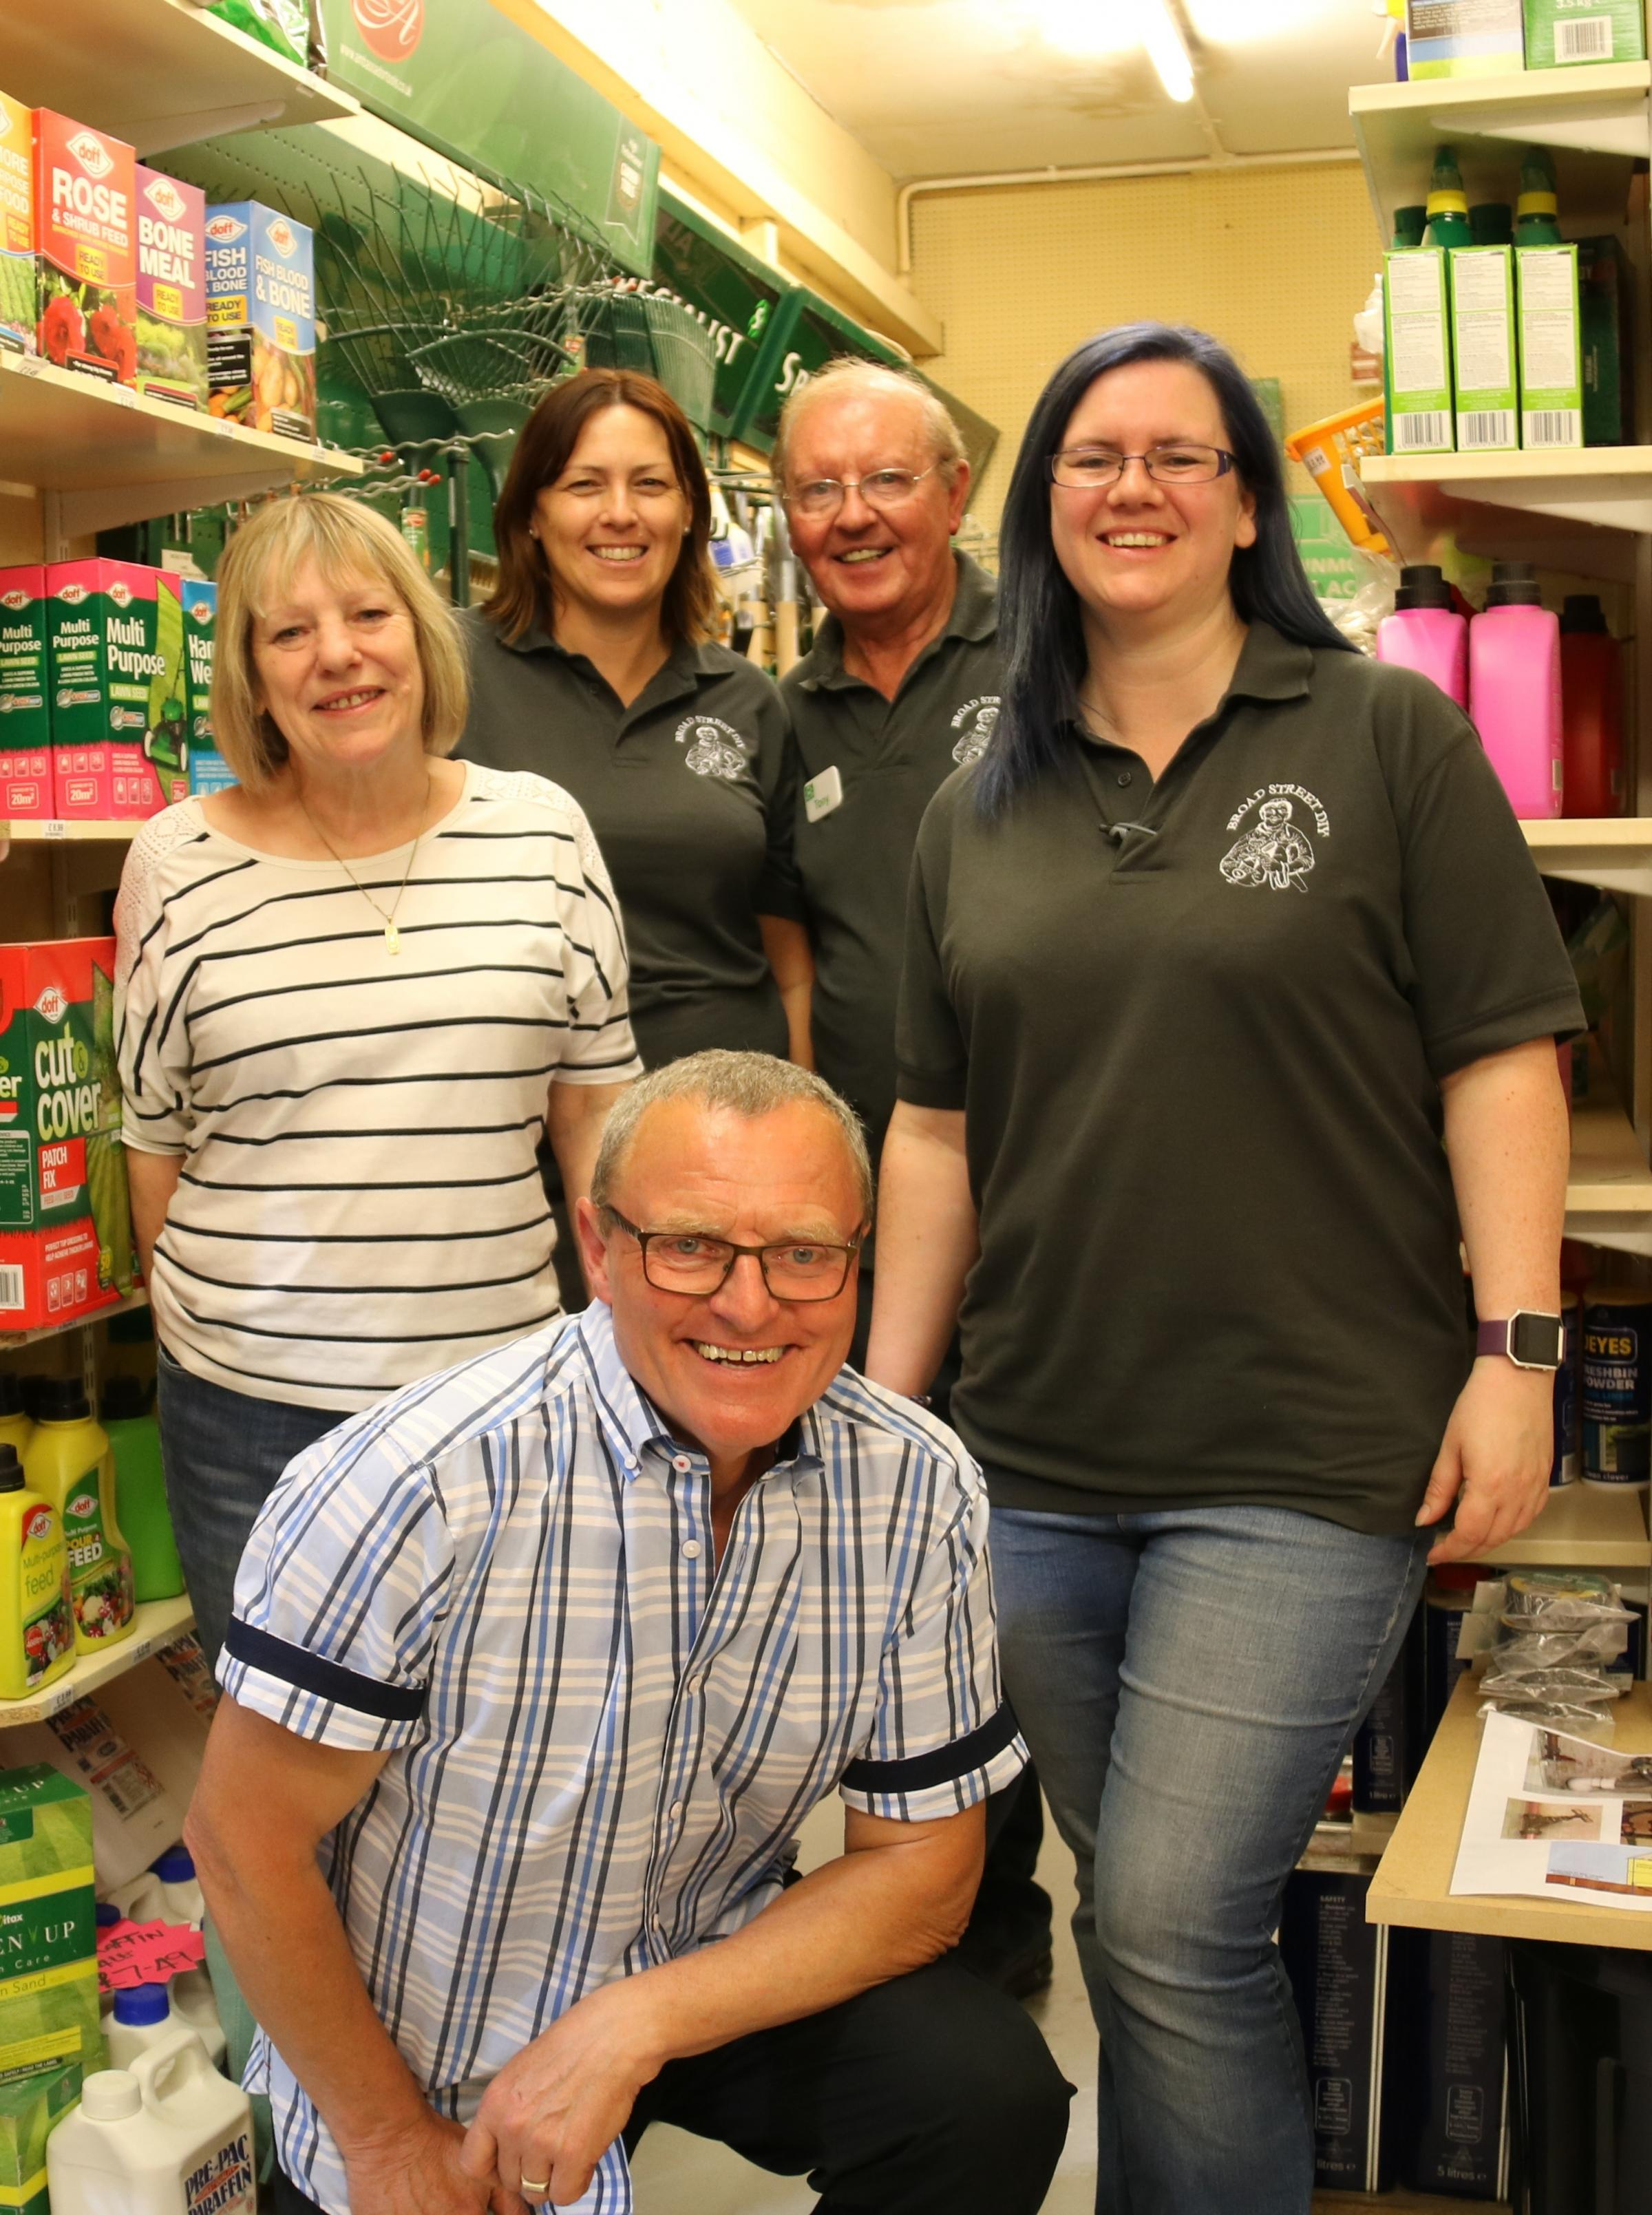 Reg Moule, Jenny Edginton, Hayley Warren, Tony Warren and Lisa Childs, of Broad Street DIY